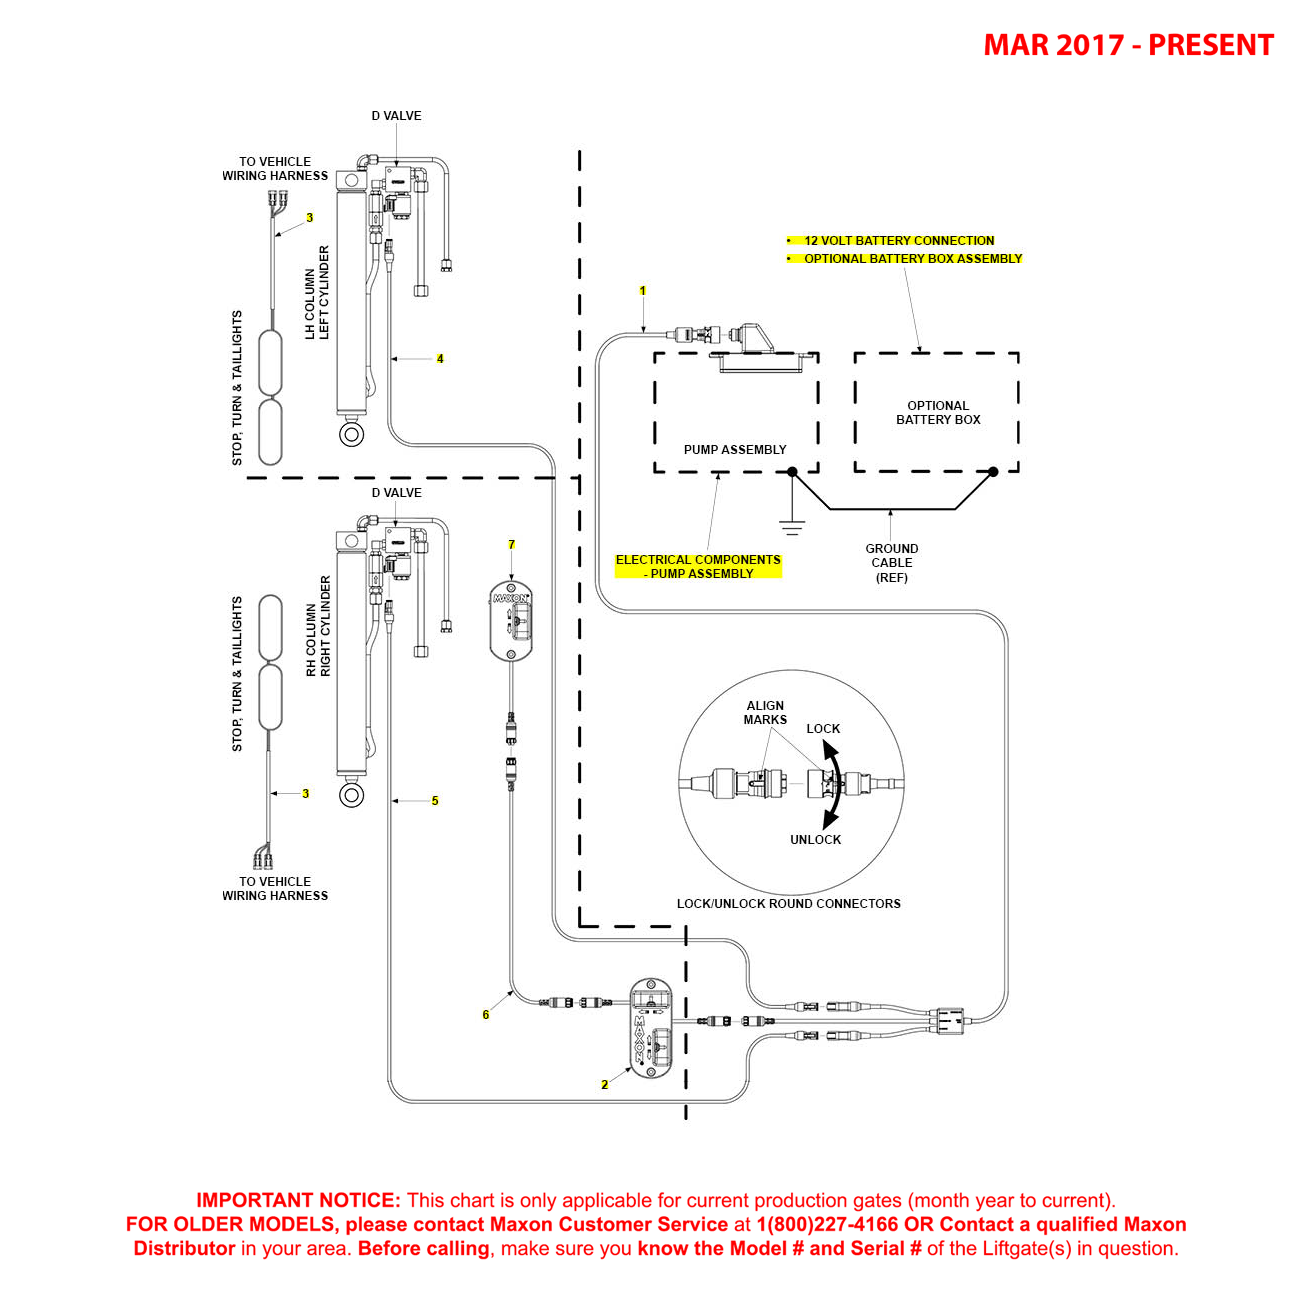 BMR (Mar 2017 - Present) Bucher Hydraulics Electrical Systems Diagram